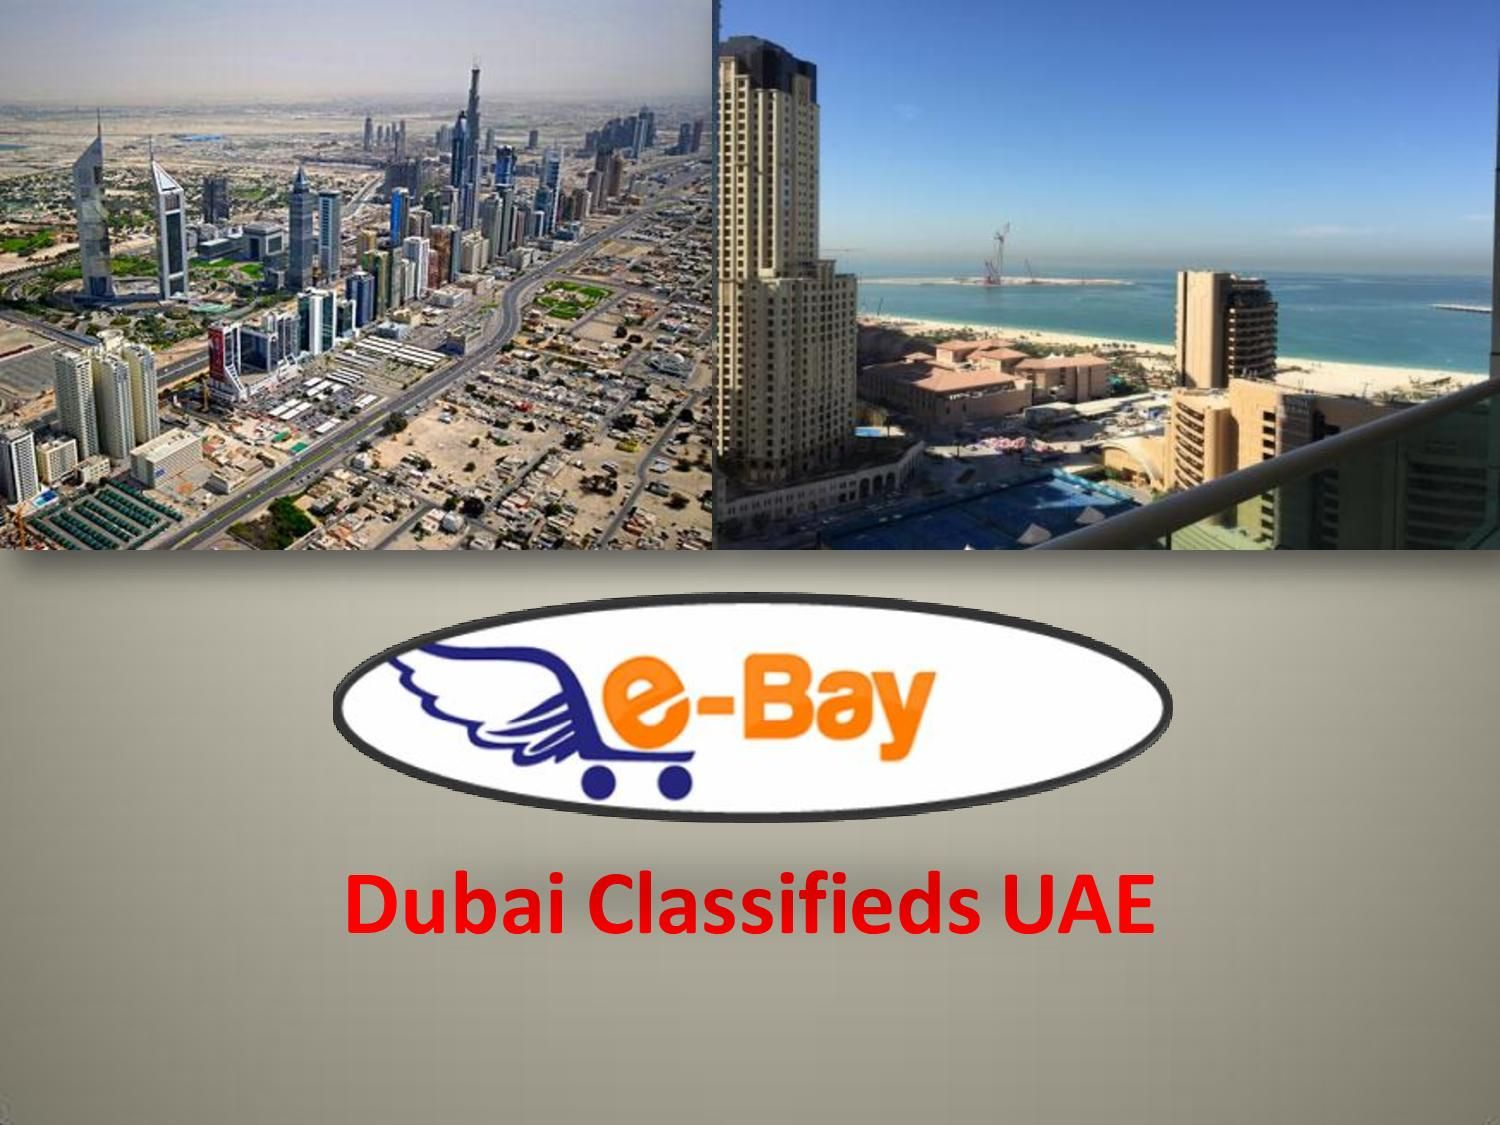 ebay.ae is one of the best Dubai Classifieds site